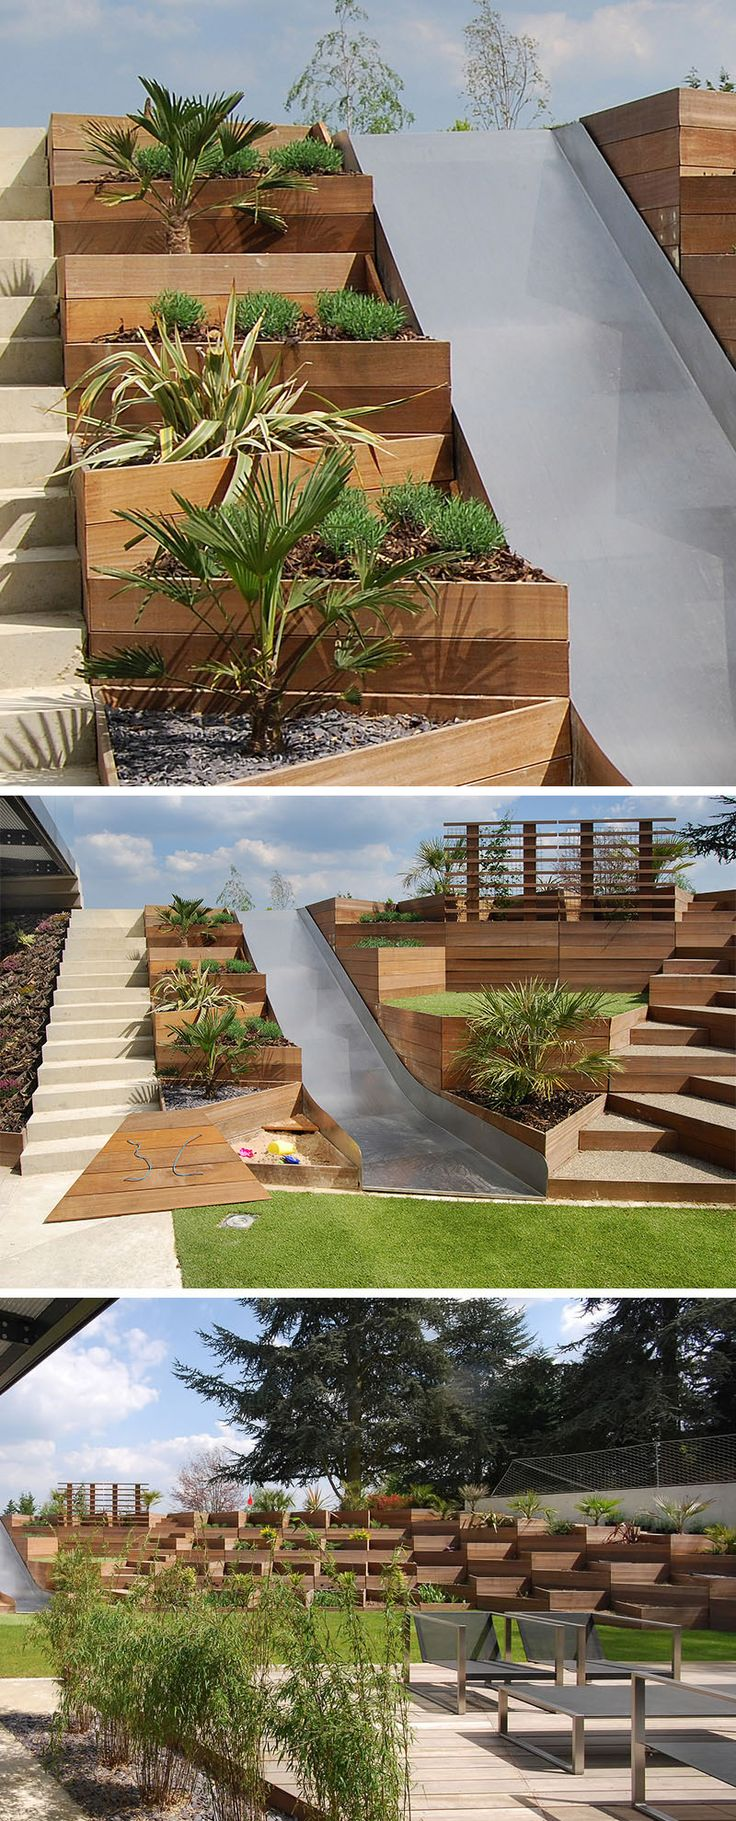 12 Ideas For Including Built-In Wood Planters In Your Outdoor Space // This backyard with a slide, makes use of triangular wooden planters to deal with the slope of the yard.